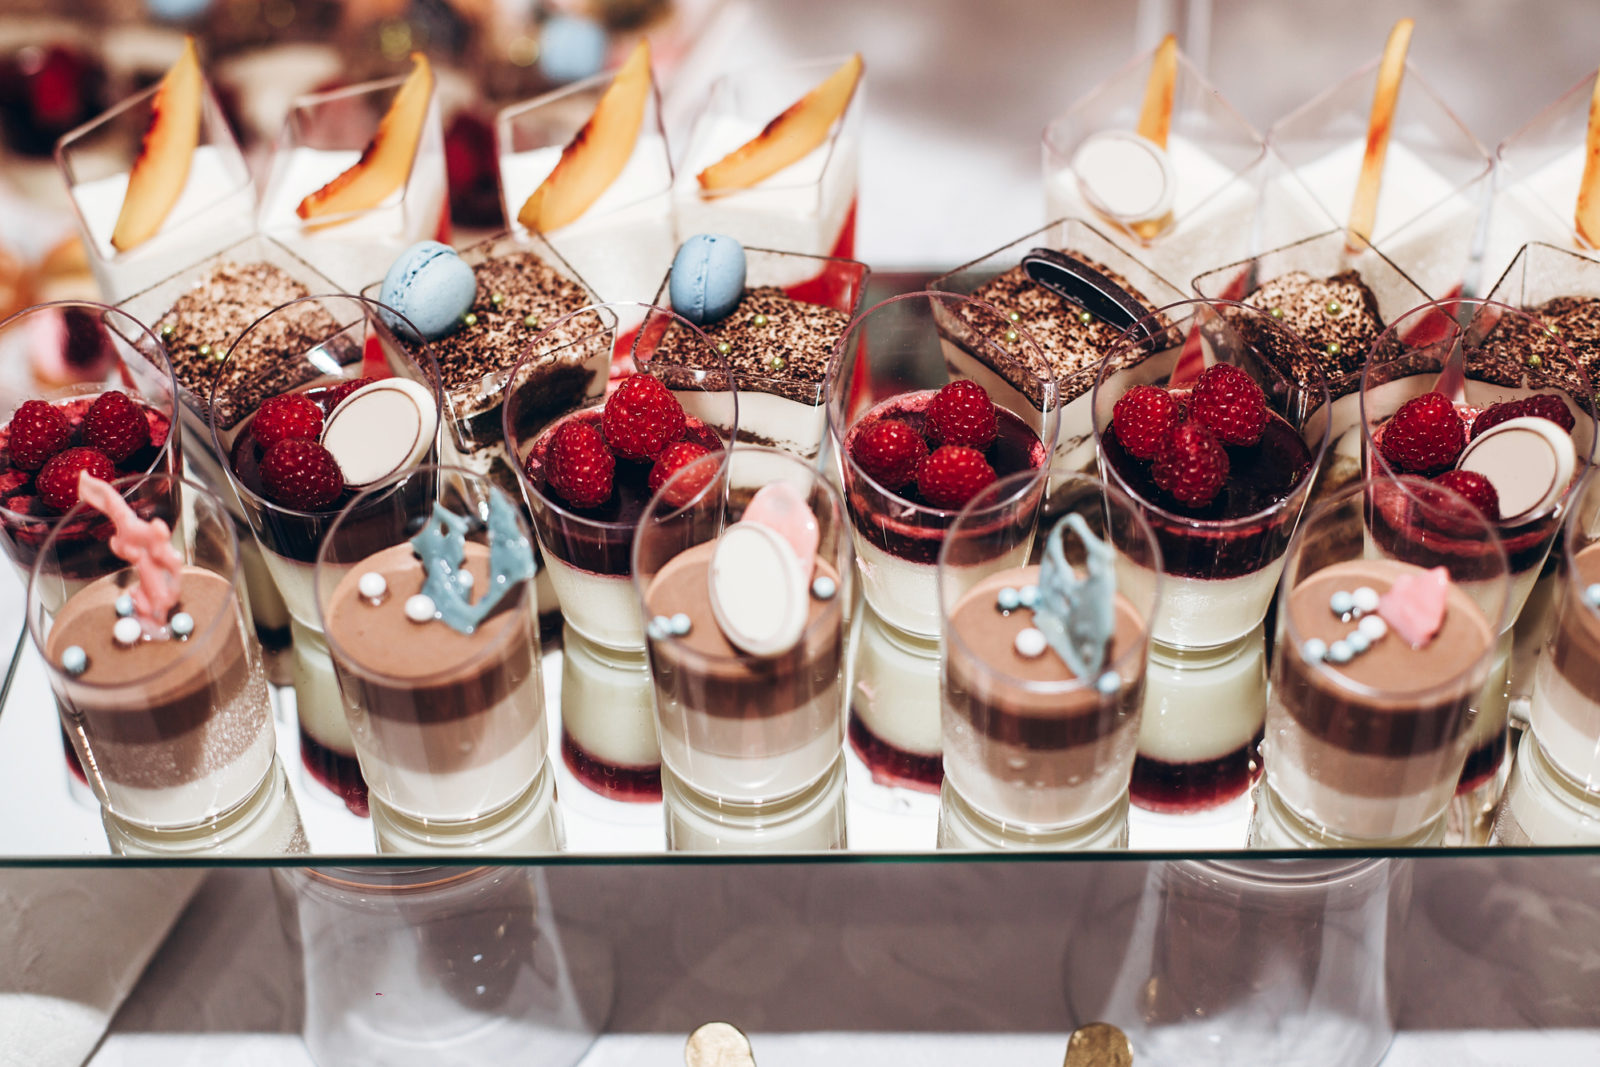 parfaits on tray